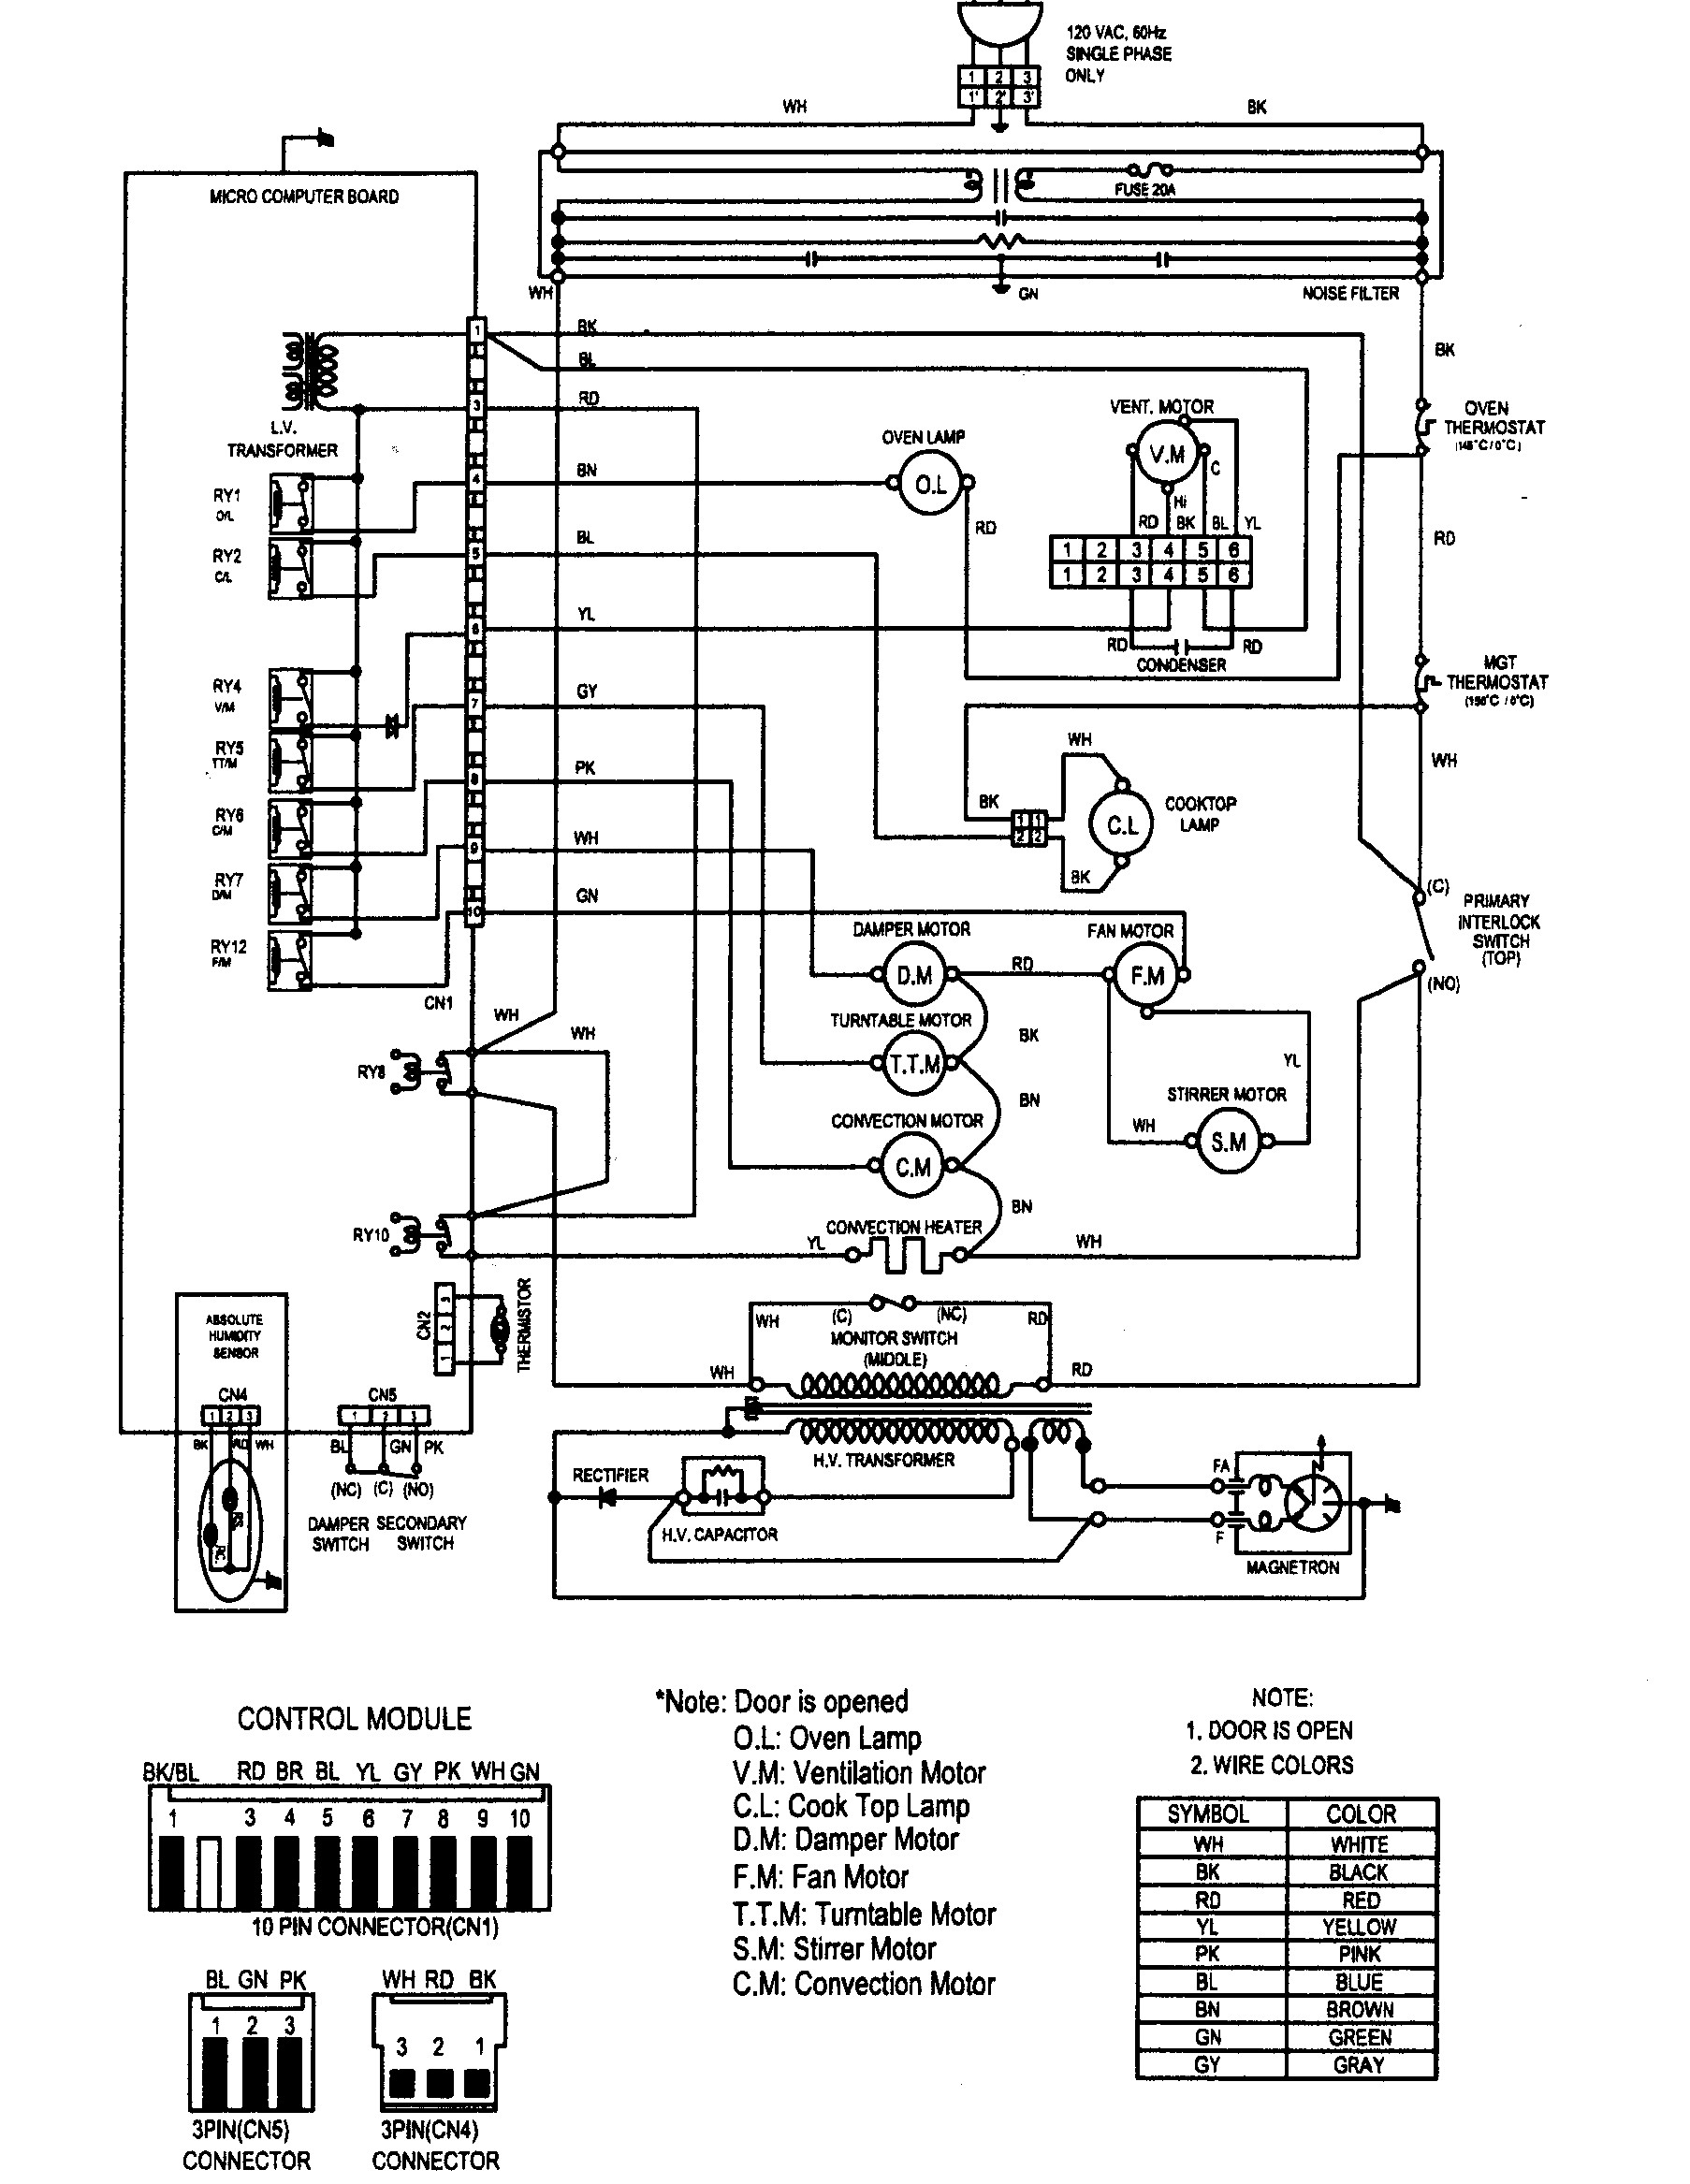 Ge Dishwasher Wiring Diagram My For Kenmore Roc Grp Of